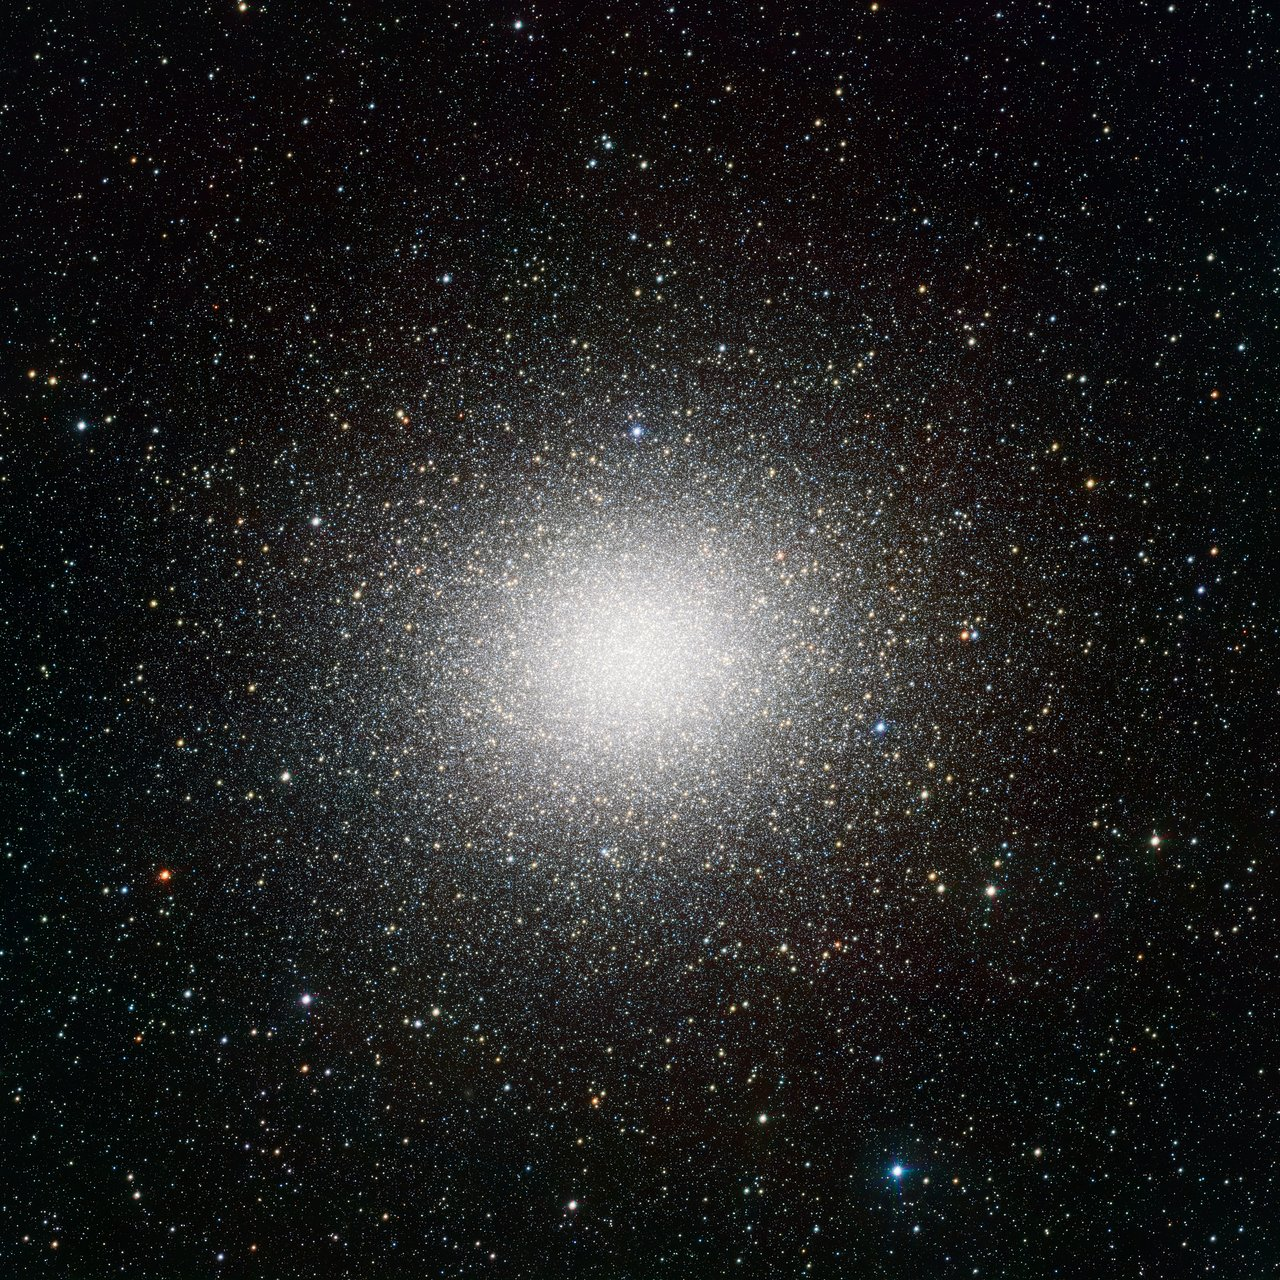 Mounted image 133: The globular cluster Omega Centauri